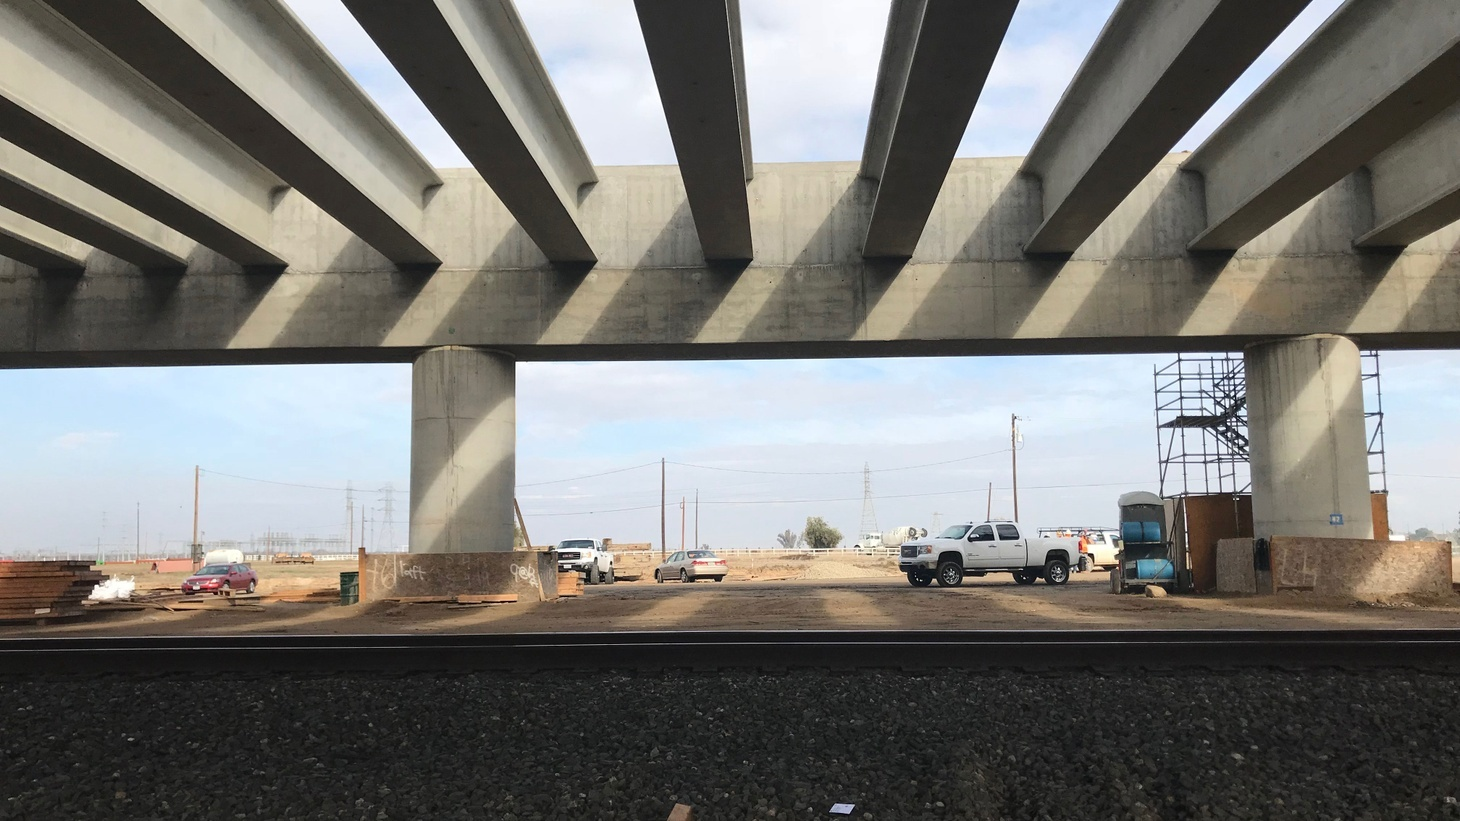 The pergola in the San Joaquin River Viaduct will allow California's high-speed rail to cross over the Union Pacific tracks at the south end of Fresno. Photo credit: Avishay Artsy.